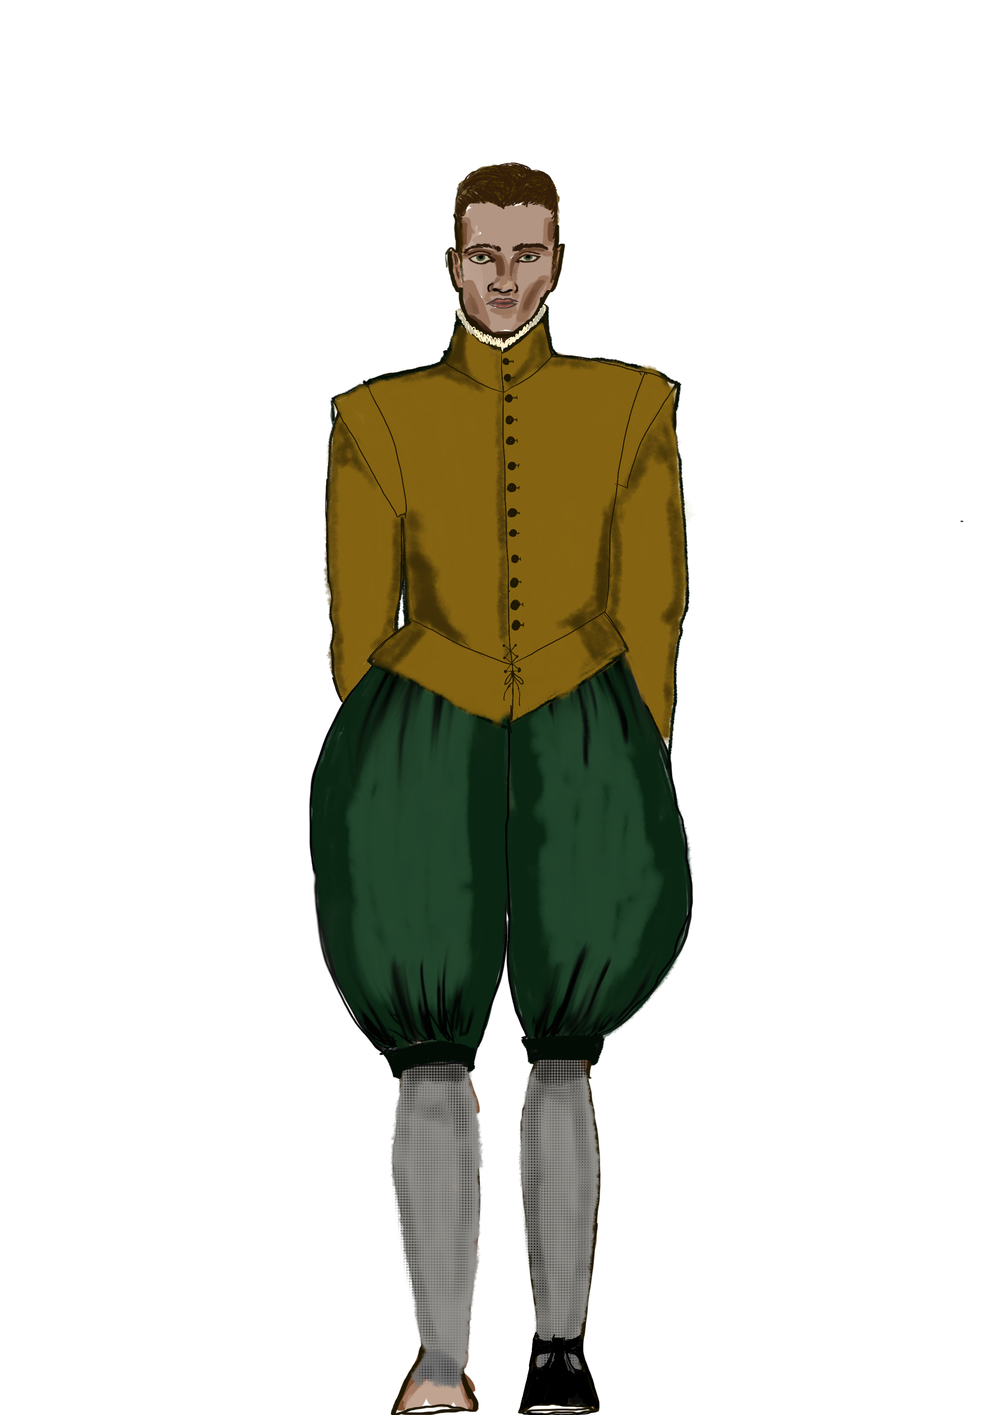 Illustration of the doublet and breeches